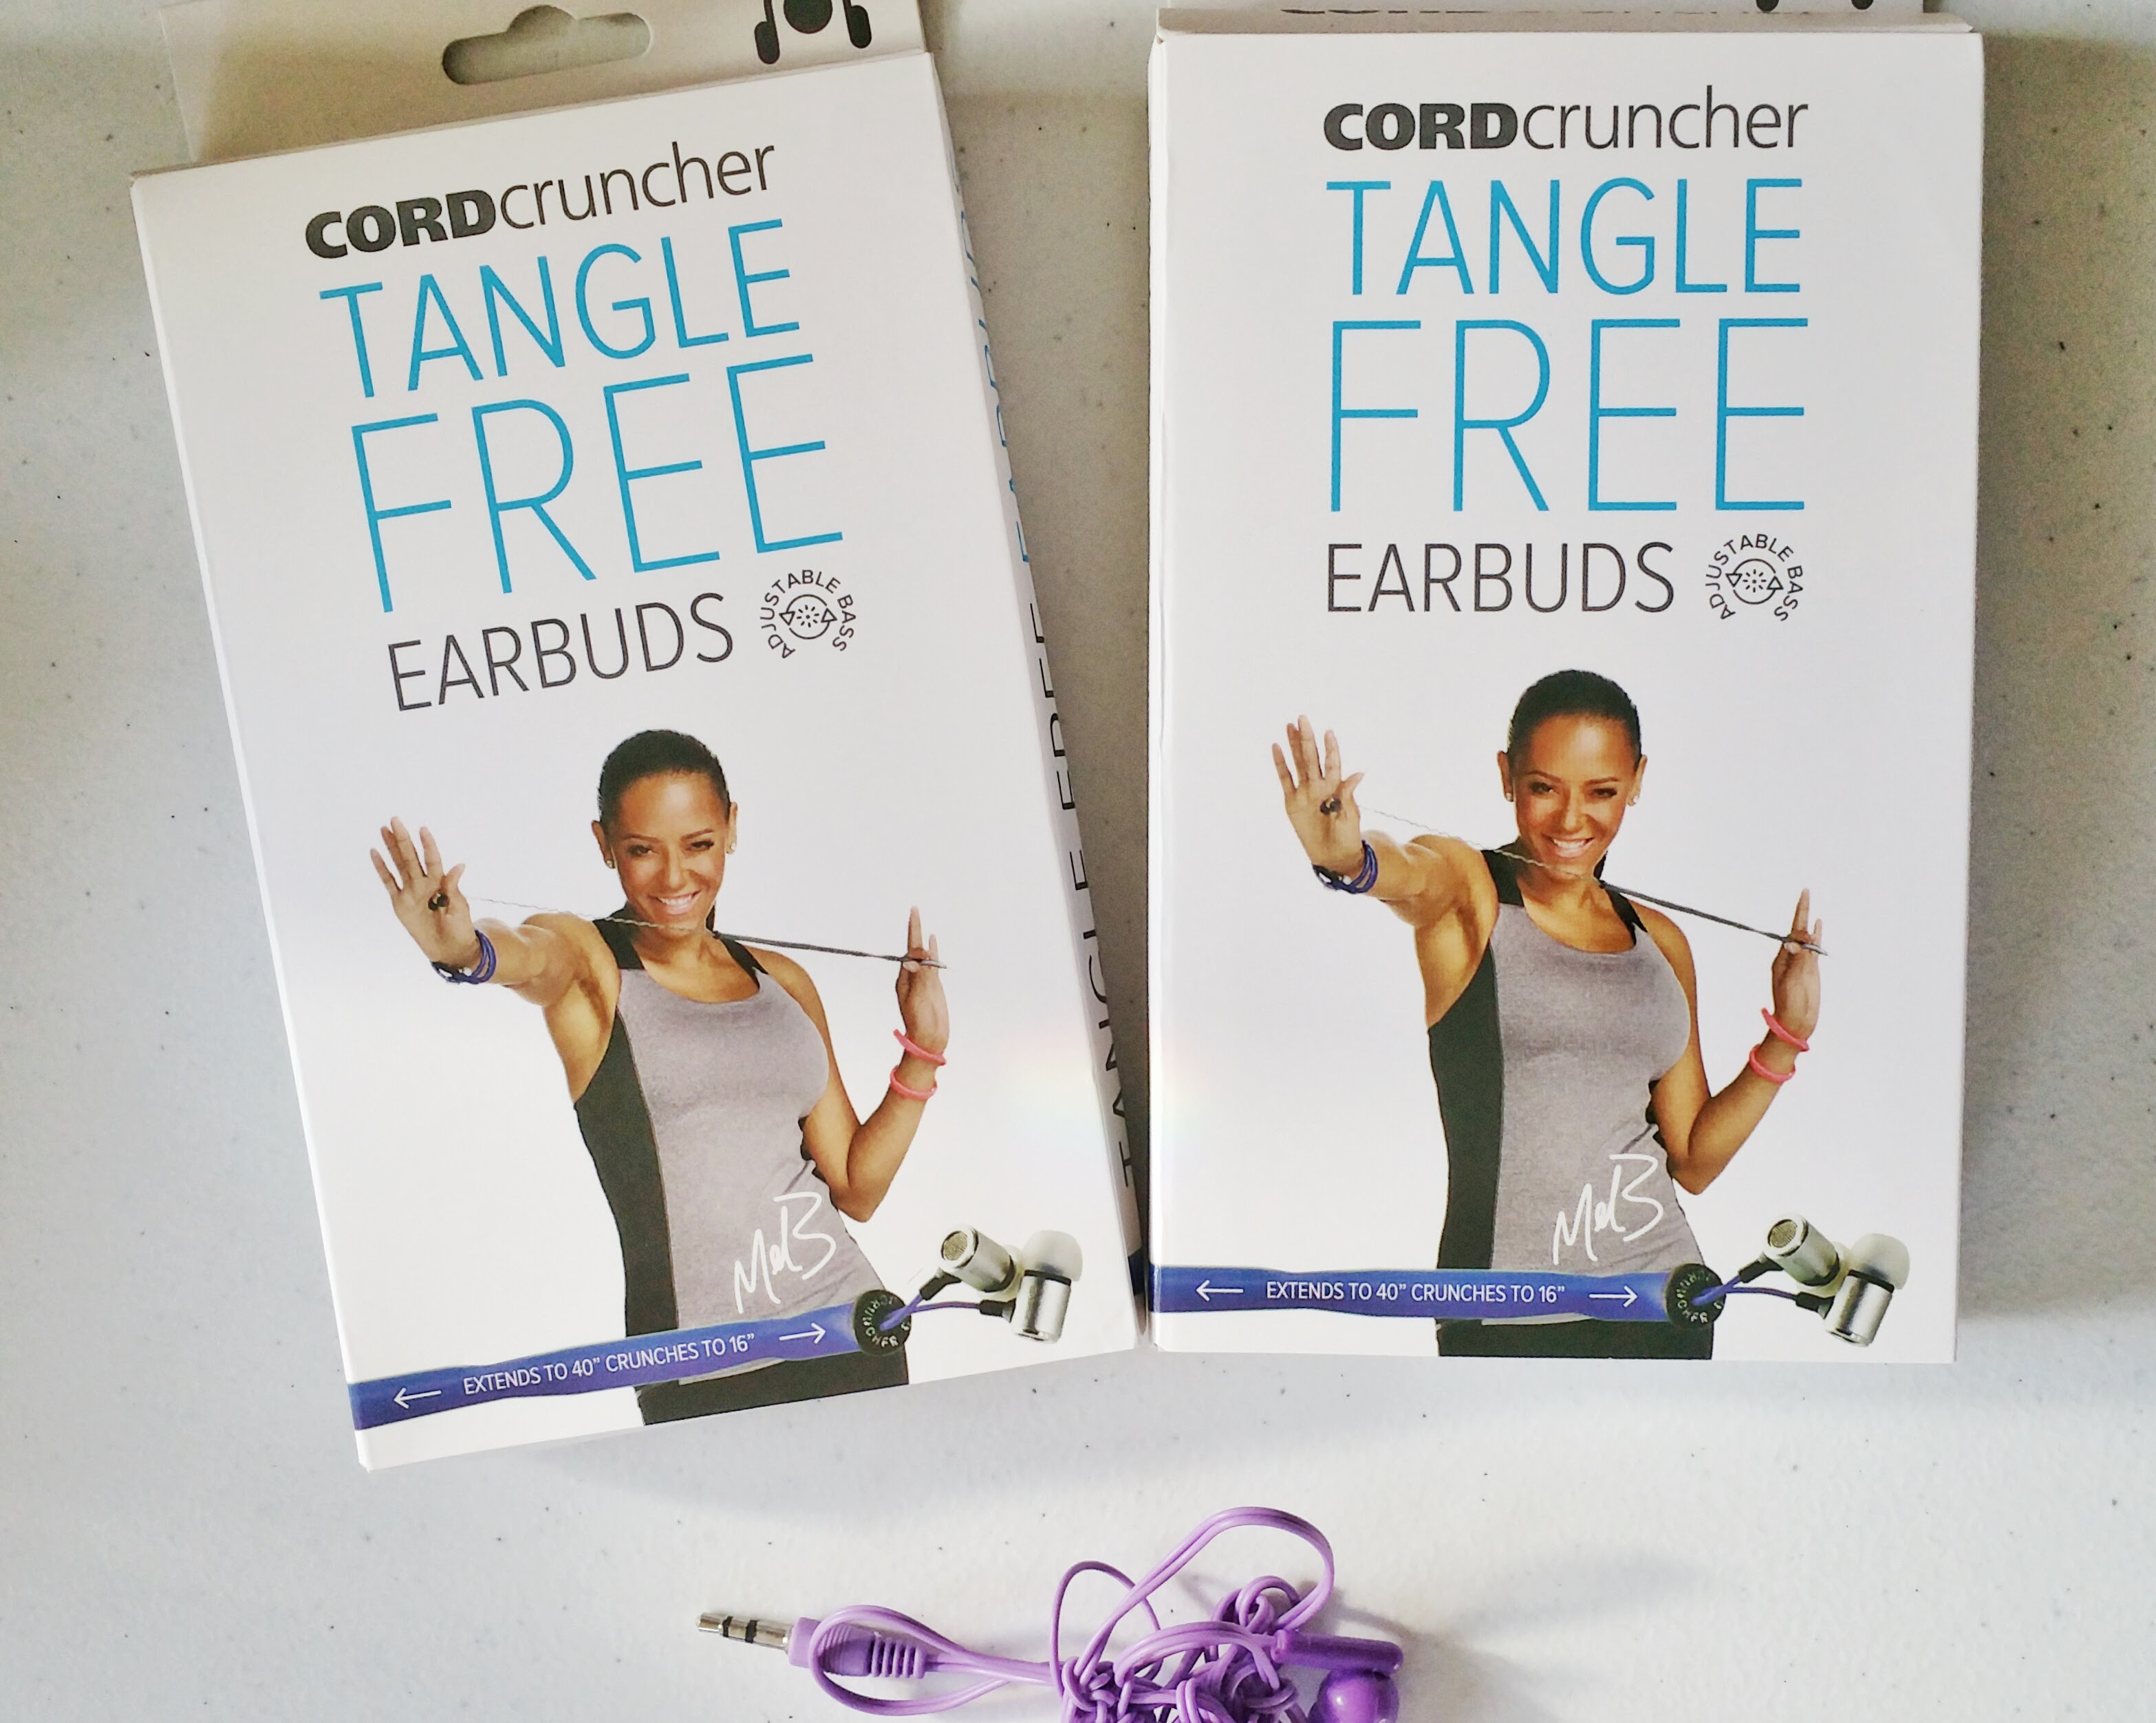 CordCruncher, Tangle free headphones, headphones, tech gear, tech gadgets, gadgets, review, product review, electronics, mel b,